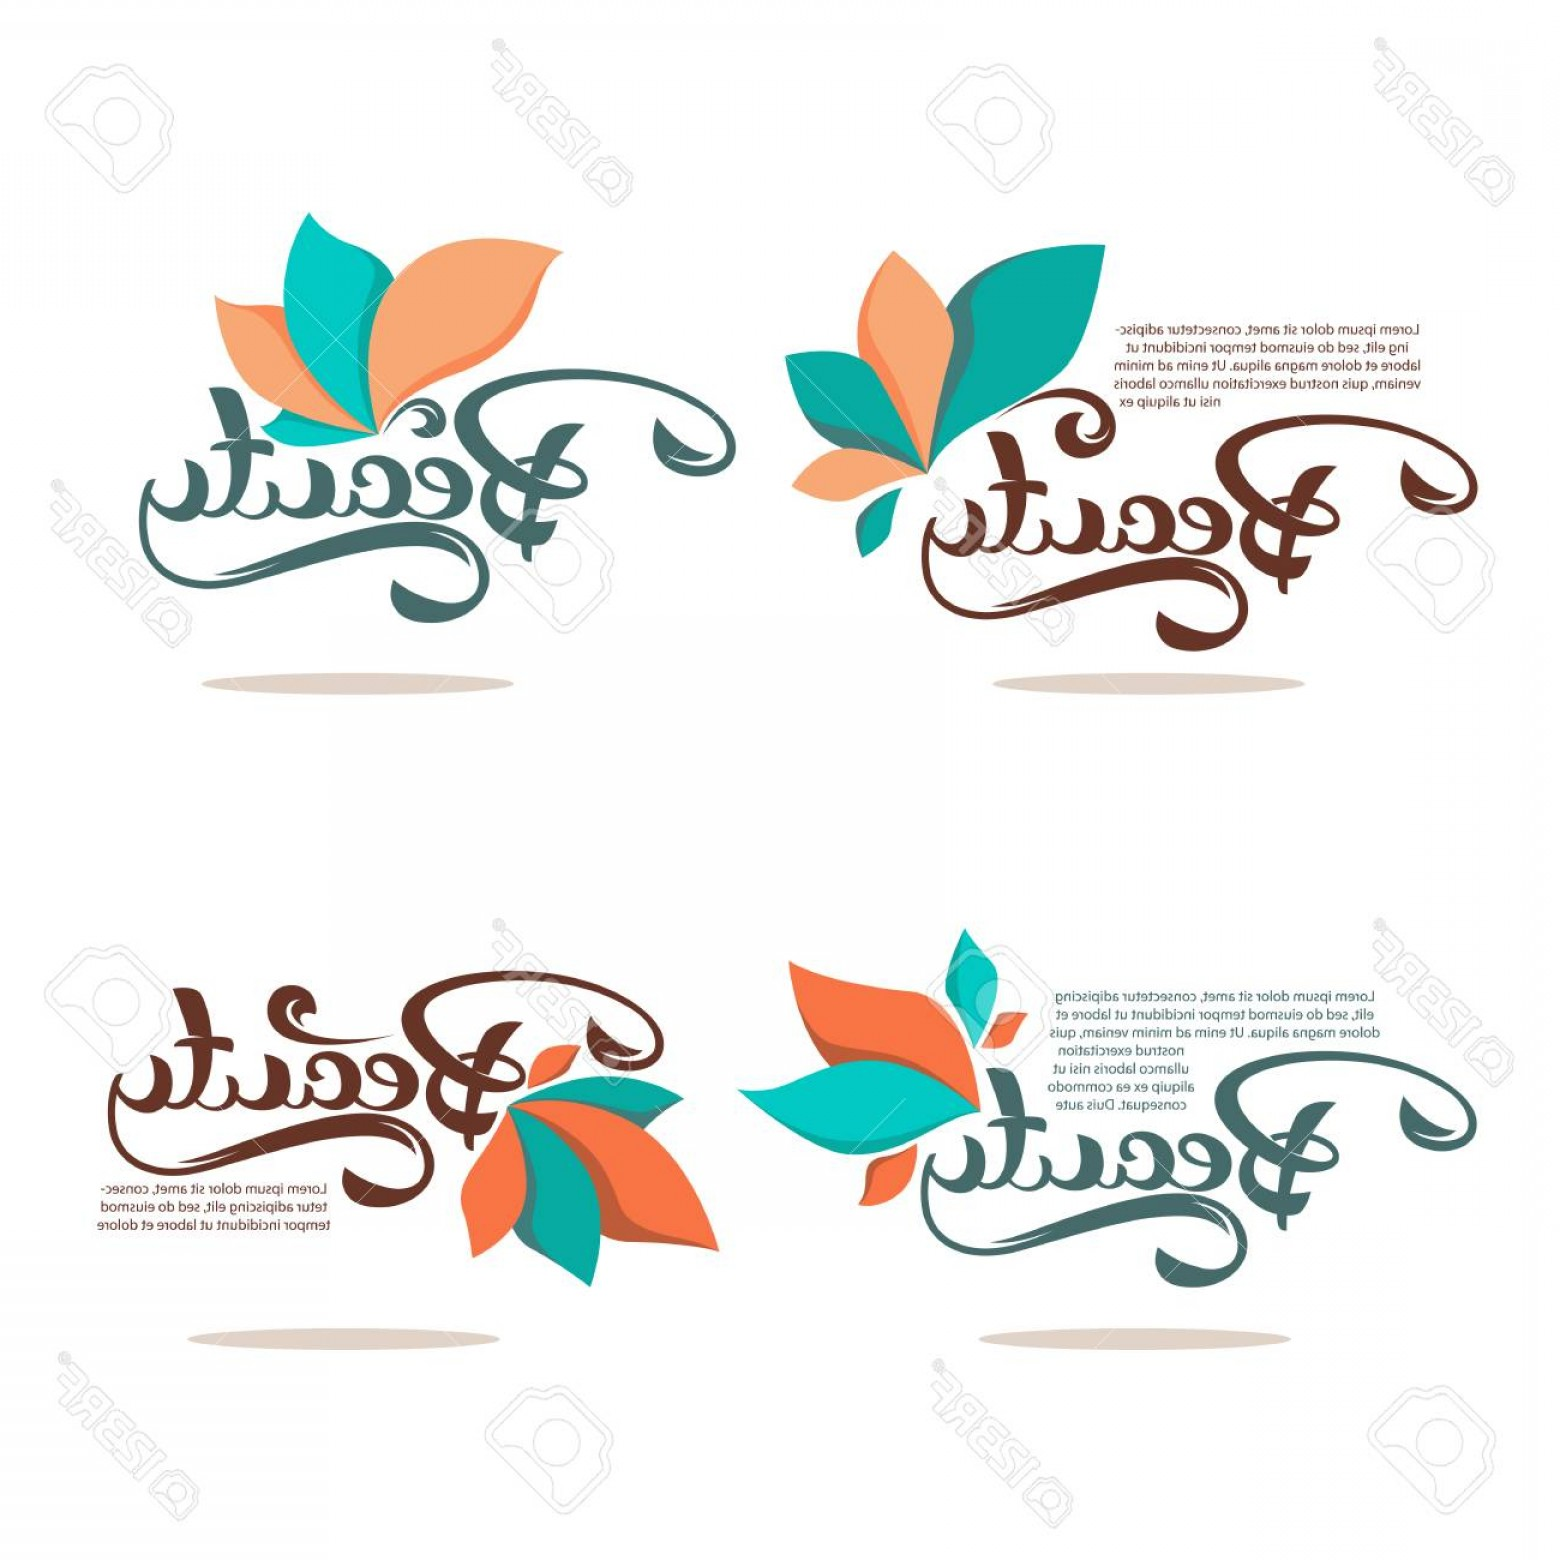 Florid Vector Simple: Photostock Vector Beauty And Spa Logo With Simple Floral Elements And Lettering Composition